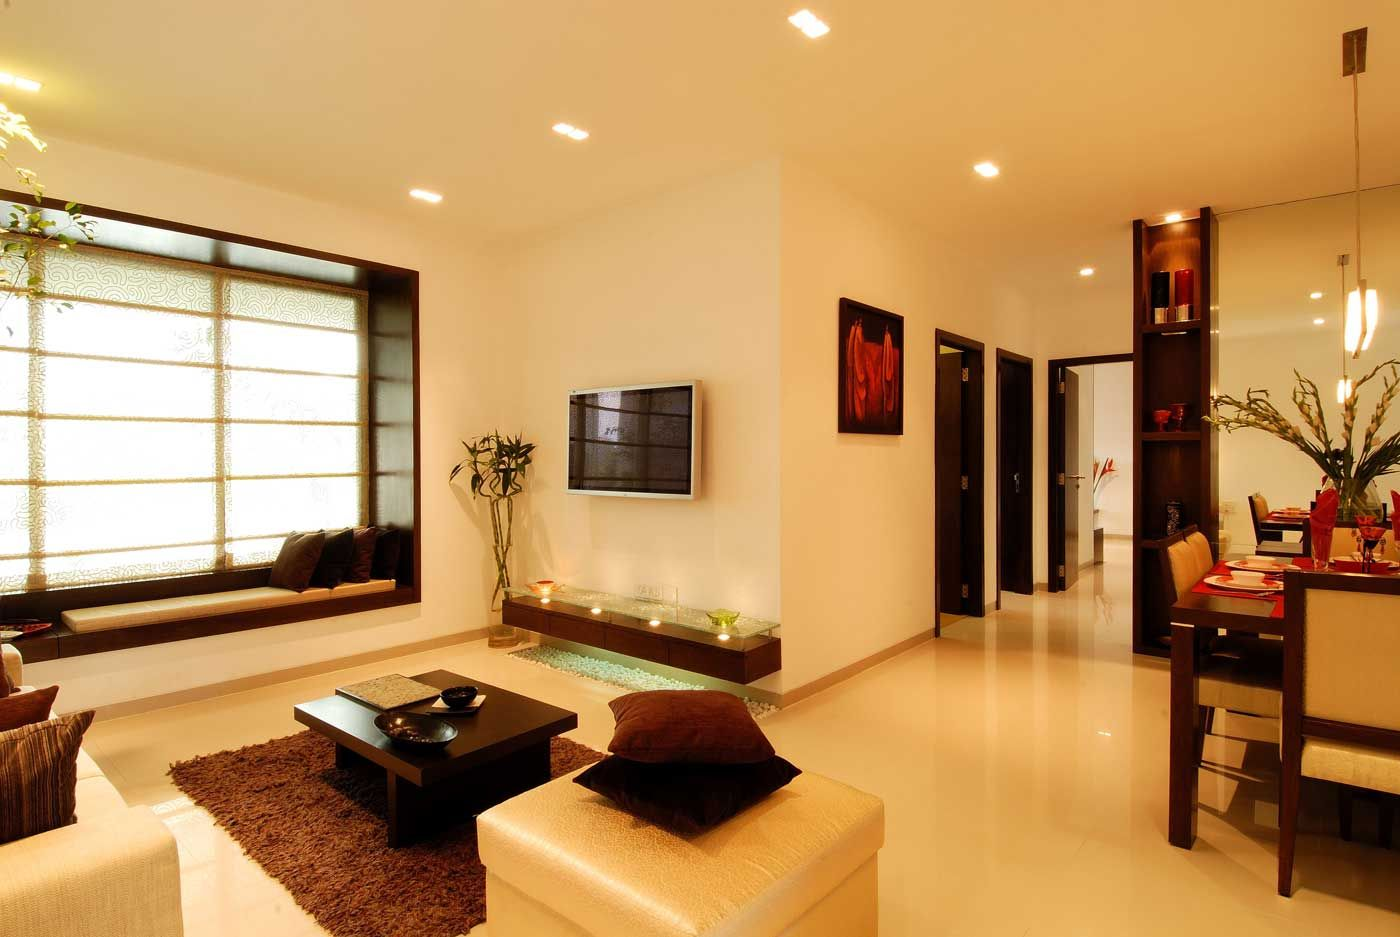 Properties in andheri flats in andheri east mumbai for 3 room flat interior design